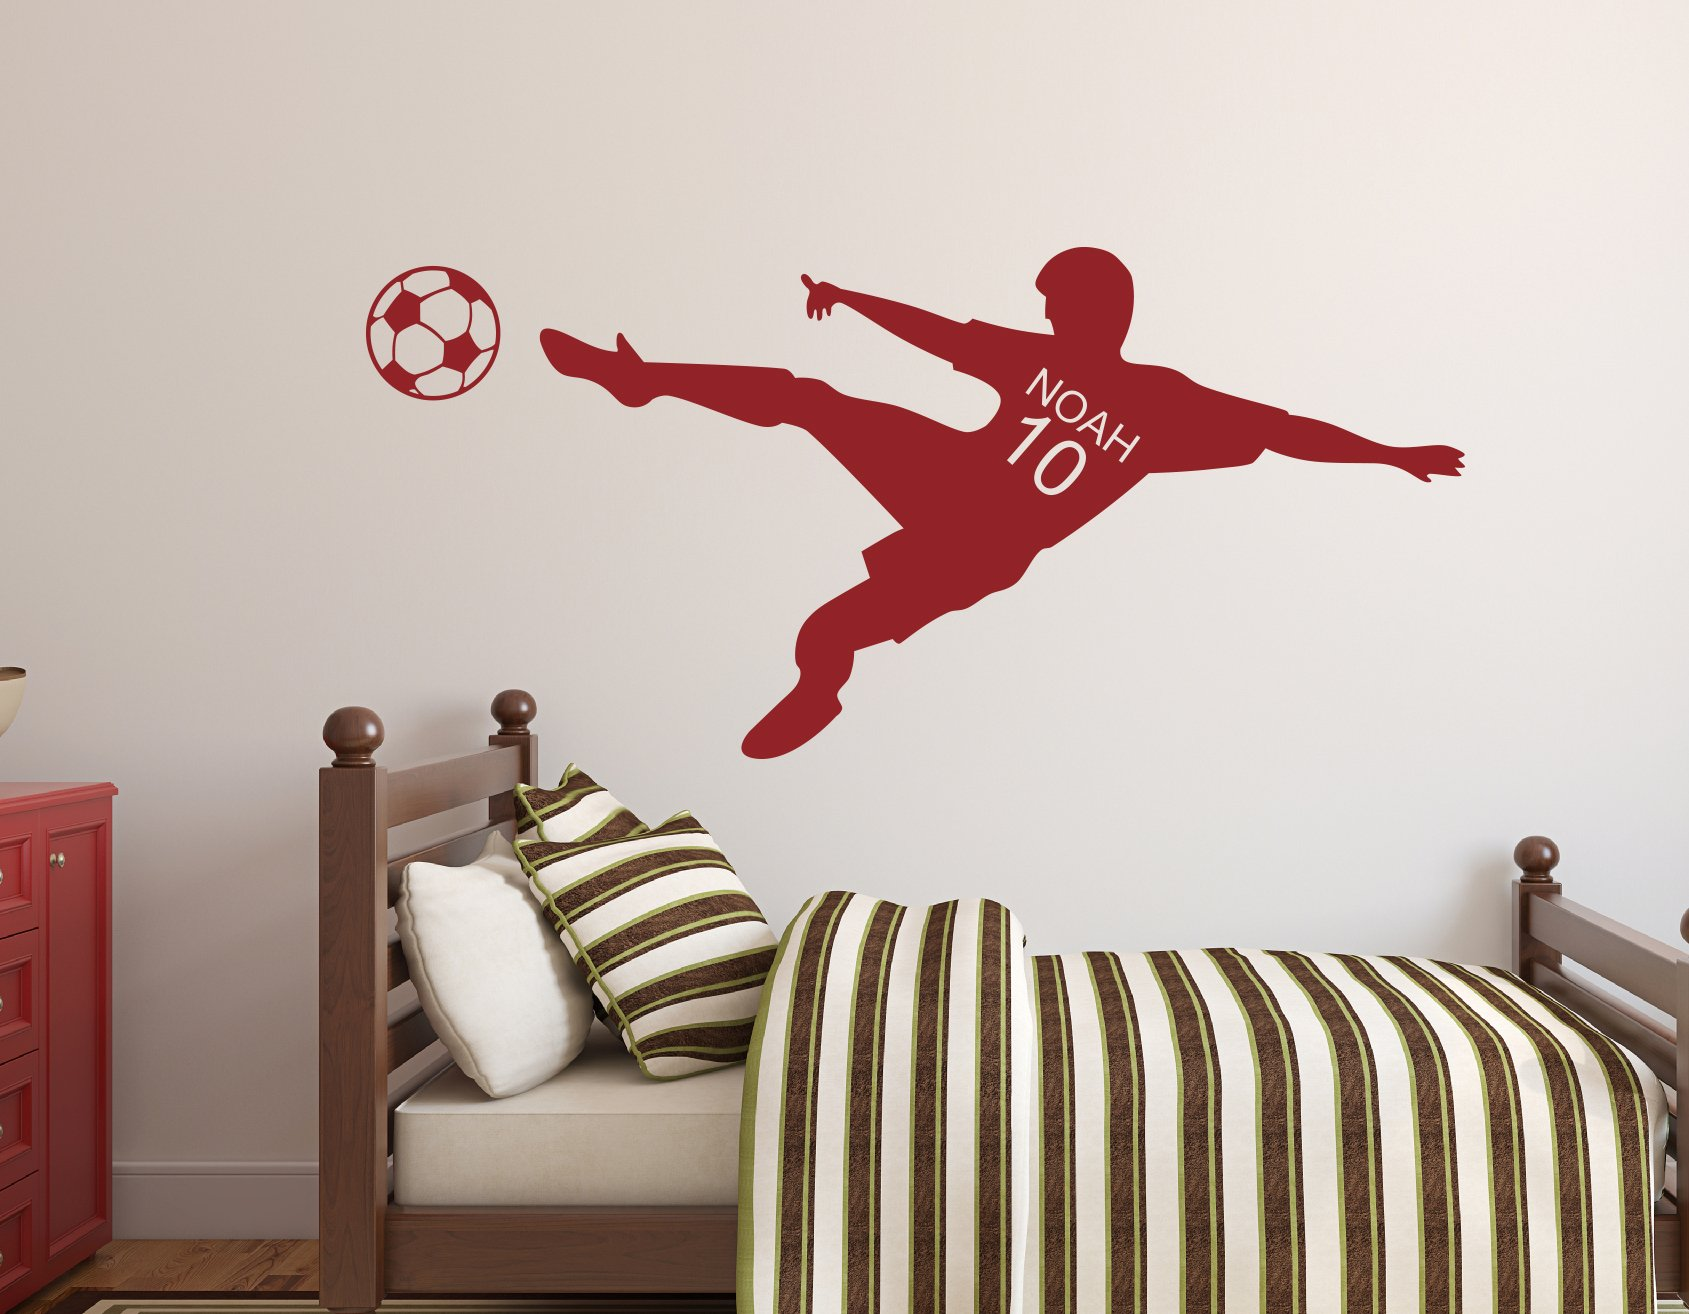 Personalized Name Soccer Wall Decal- Nursery Wall Decals - Soccer Player Wall Decal Vinyl (42Wx20H) by Lovely Decals World LLC